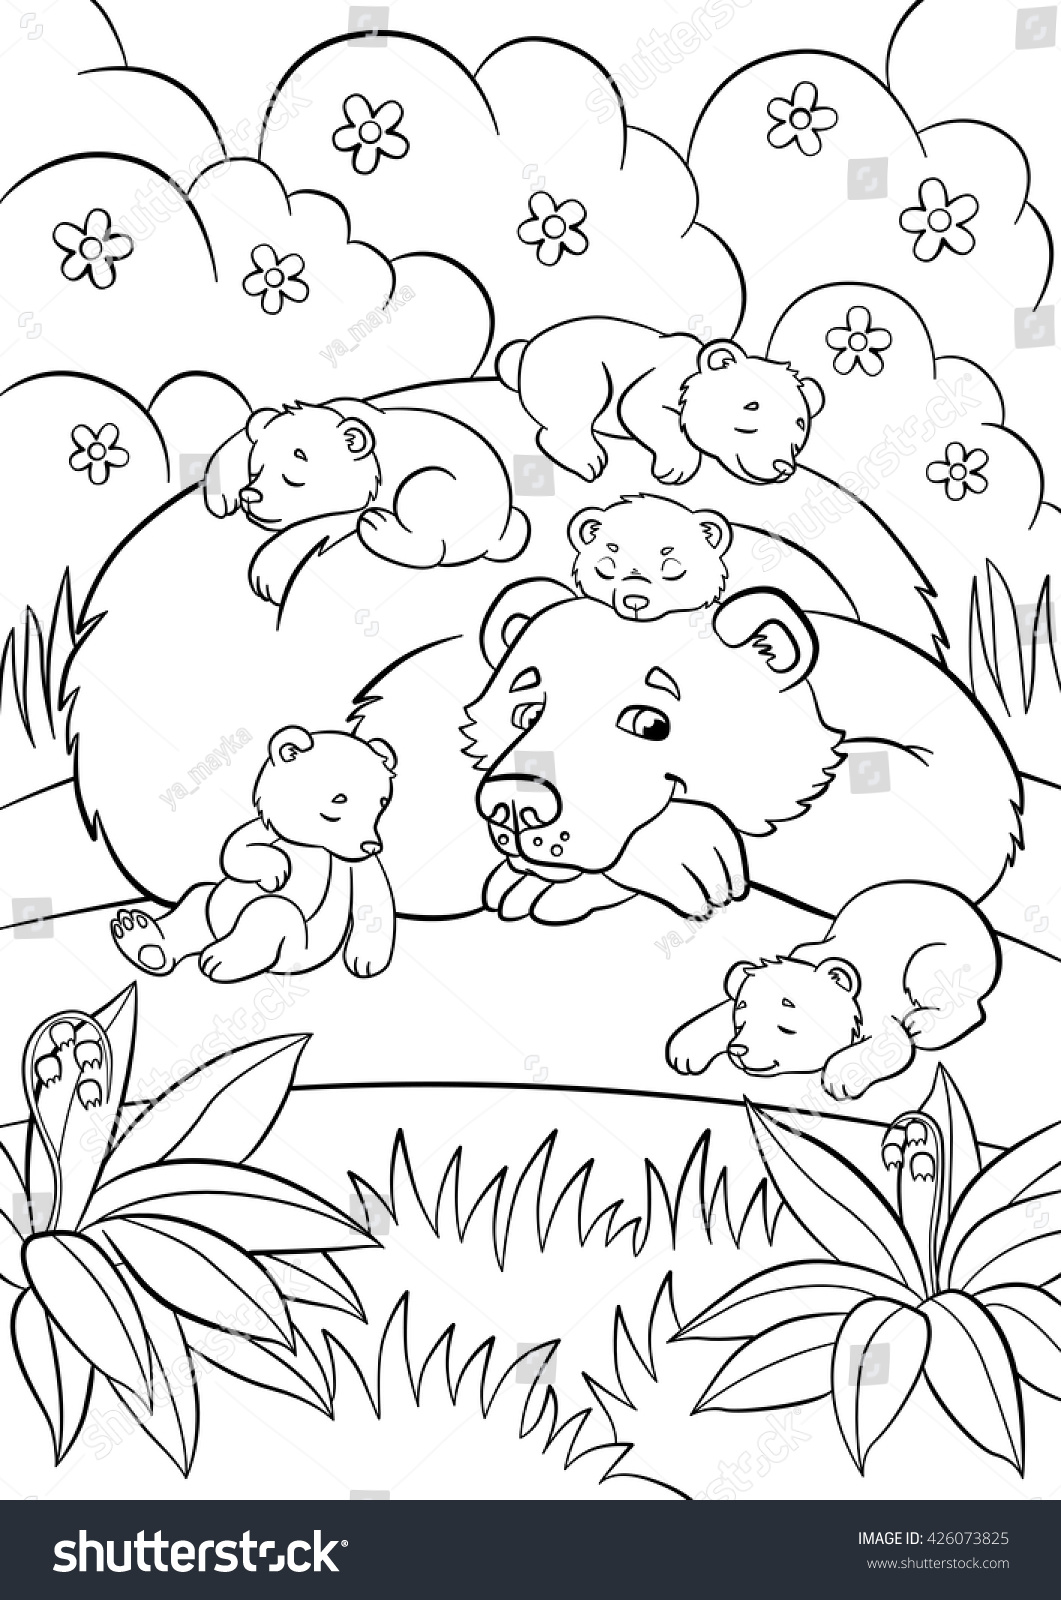 coloring pages wild animals kind bear stock vector 426073825 shutterstock. Black Bedroom Furniture Sets. Home Design Ideas